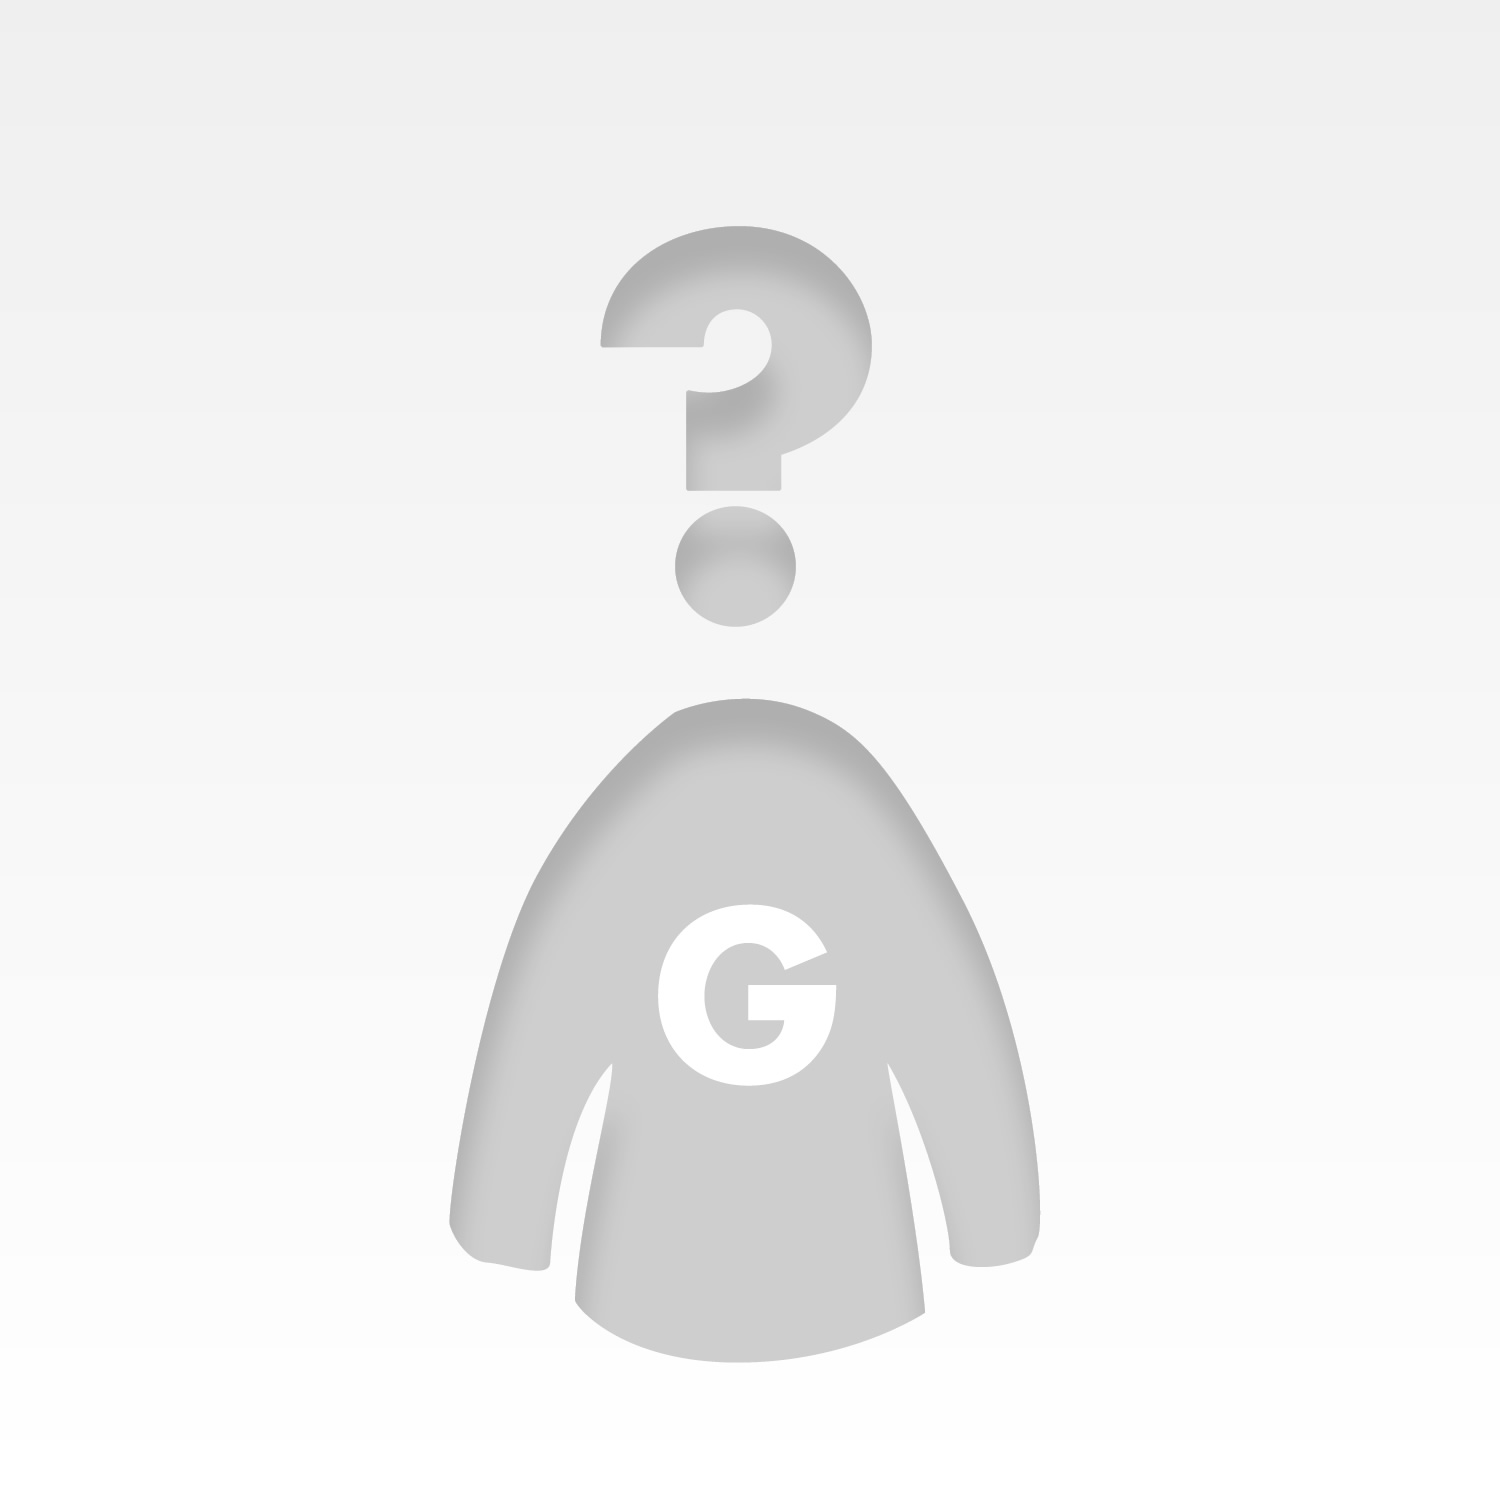 wgowell\'s avatar